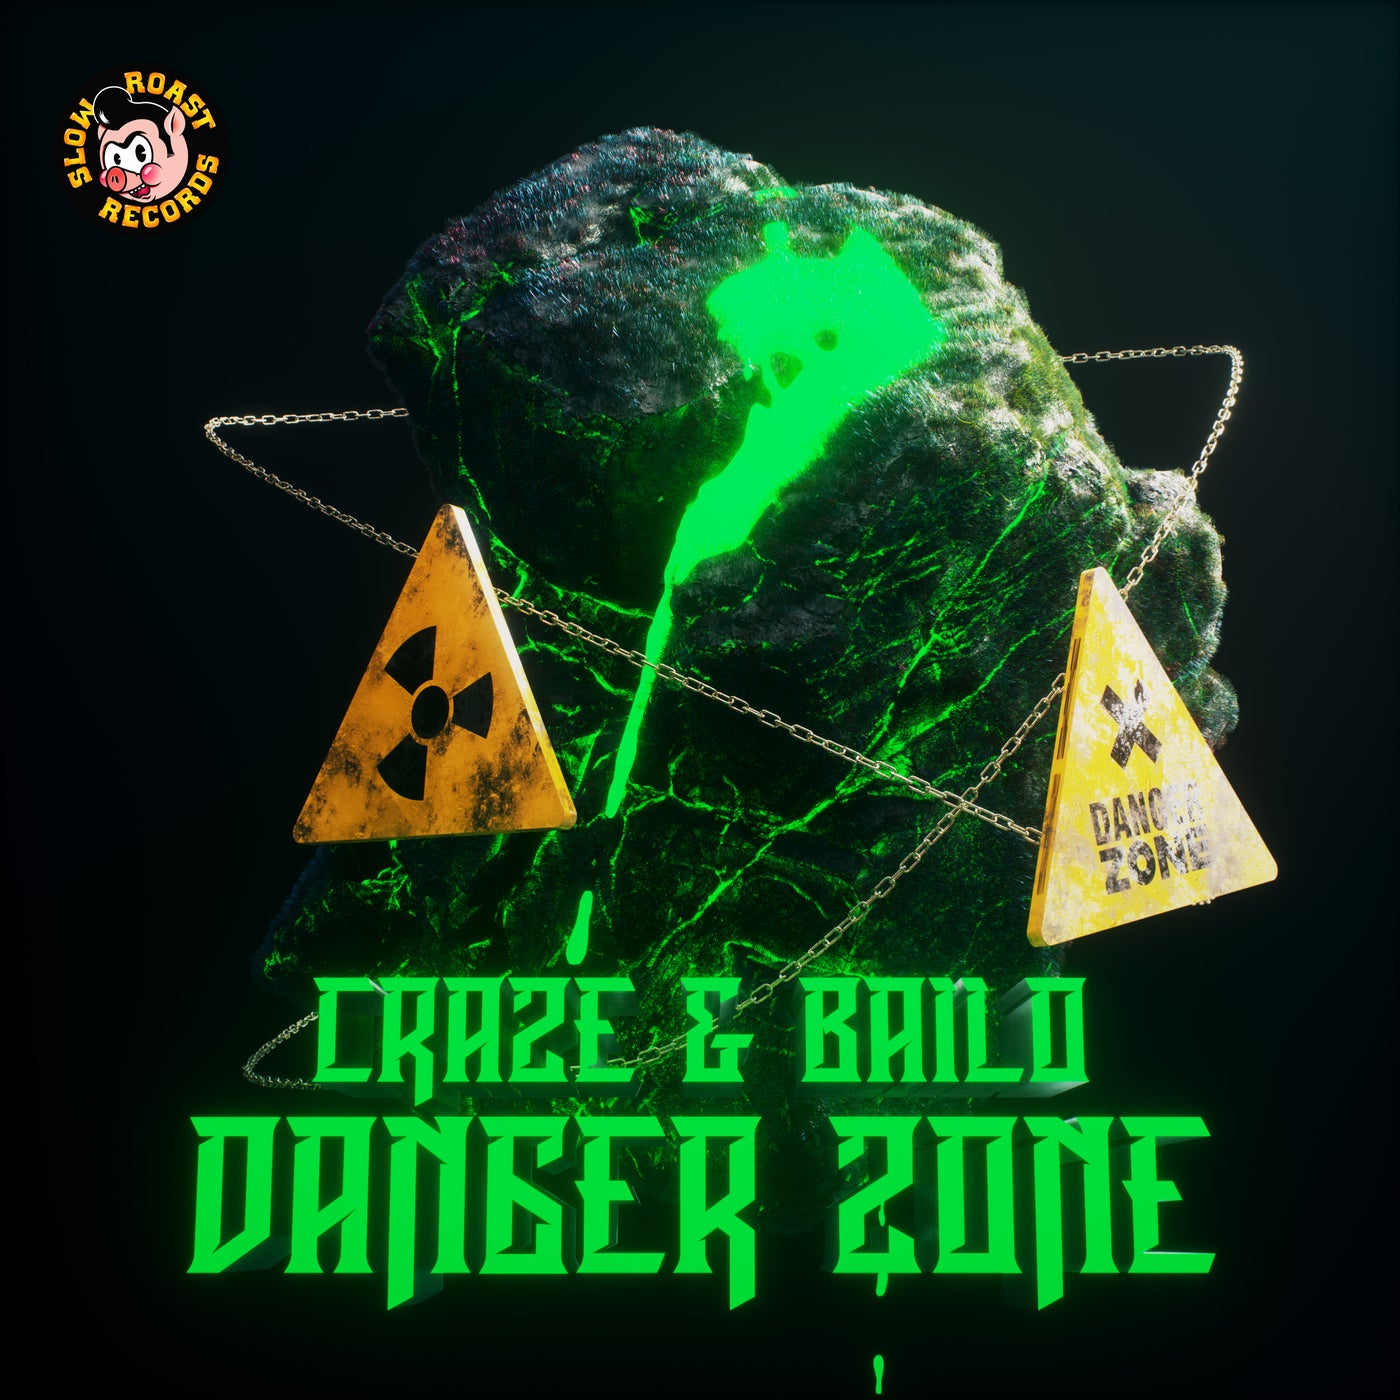 Danger Zone (Original Mix)